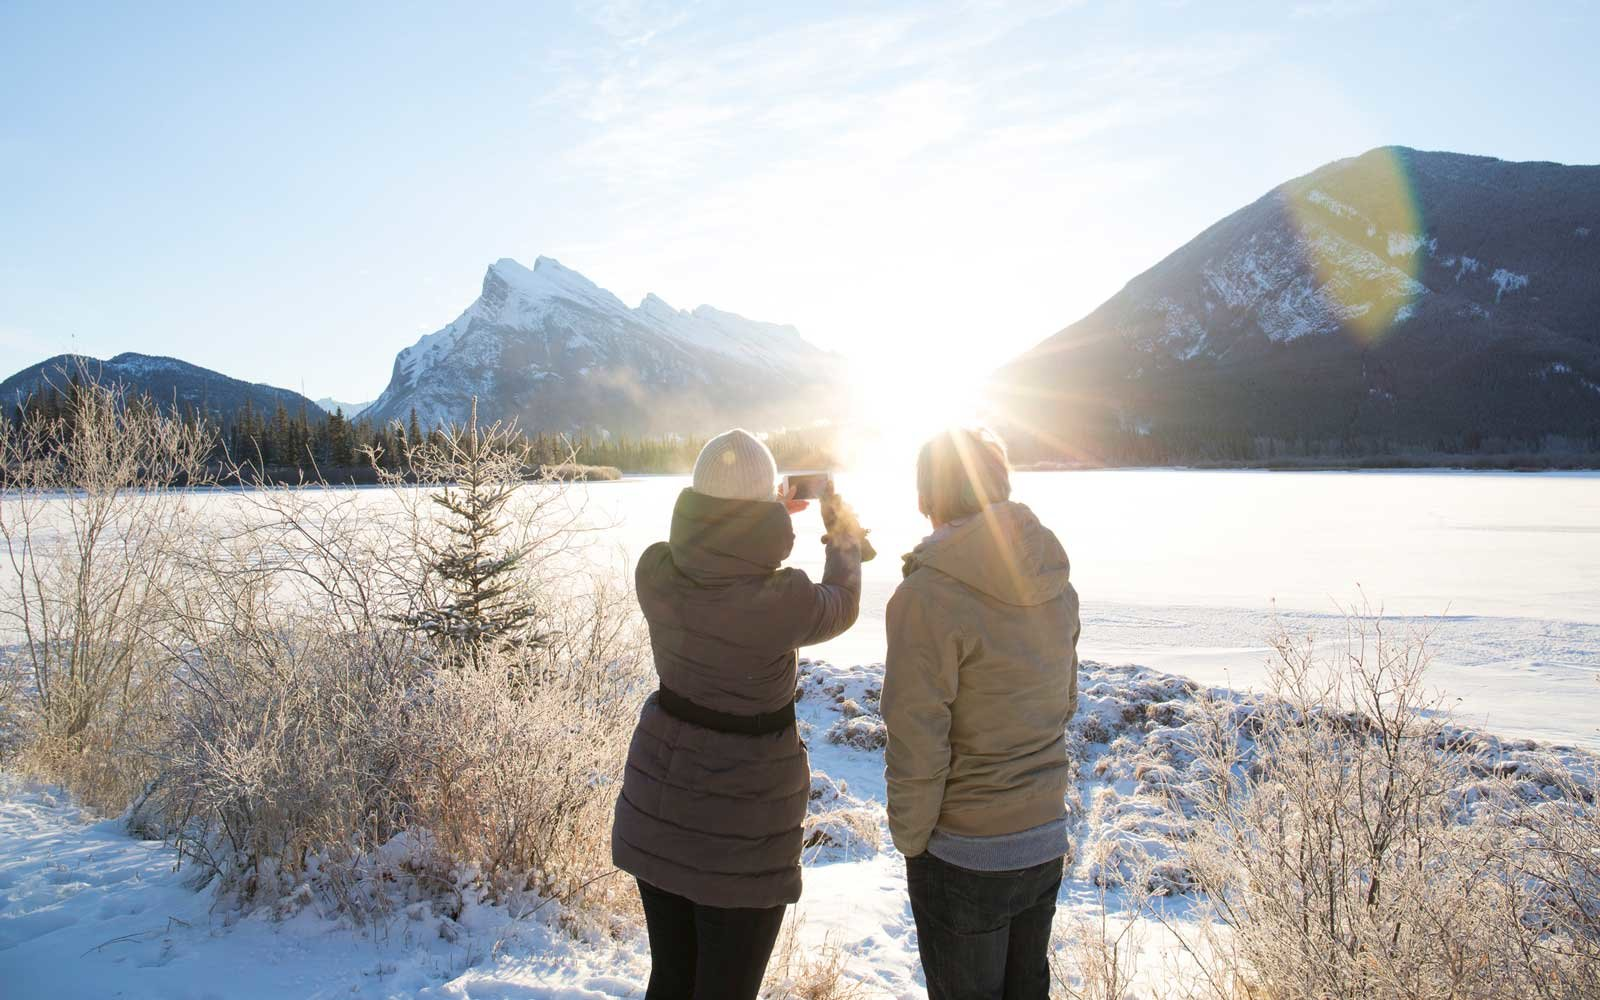 People taking a photo of a frozen lake in the winter